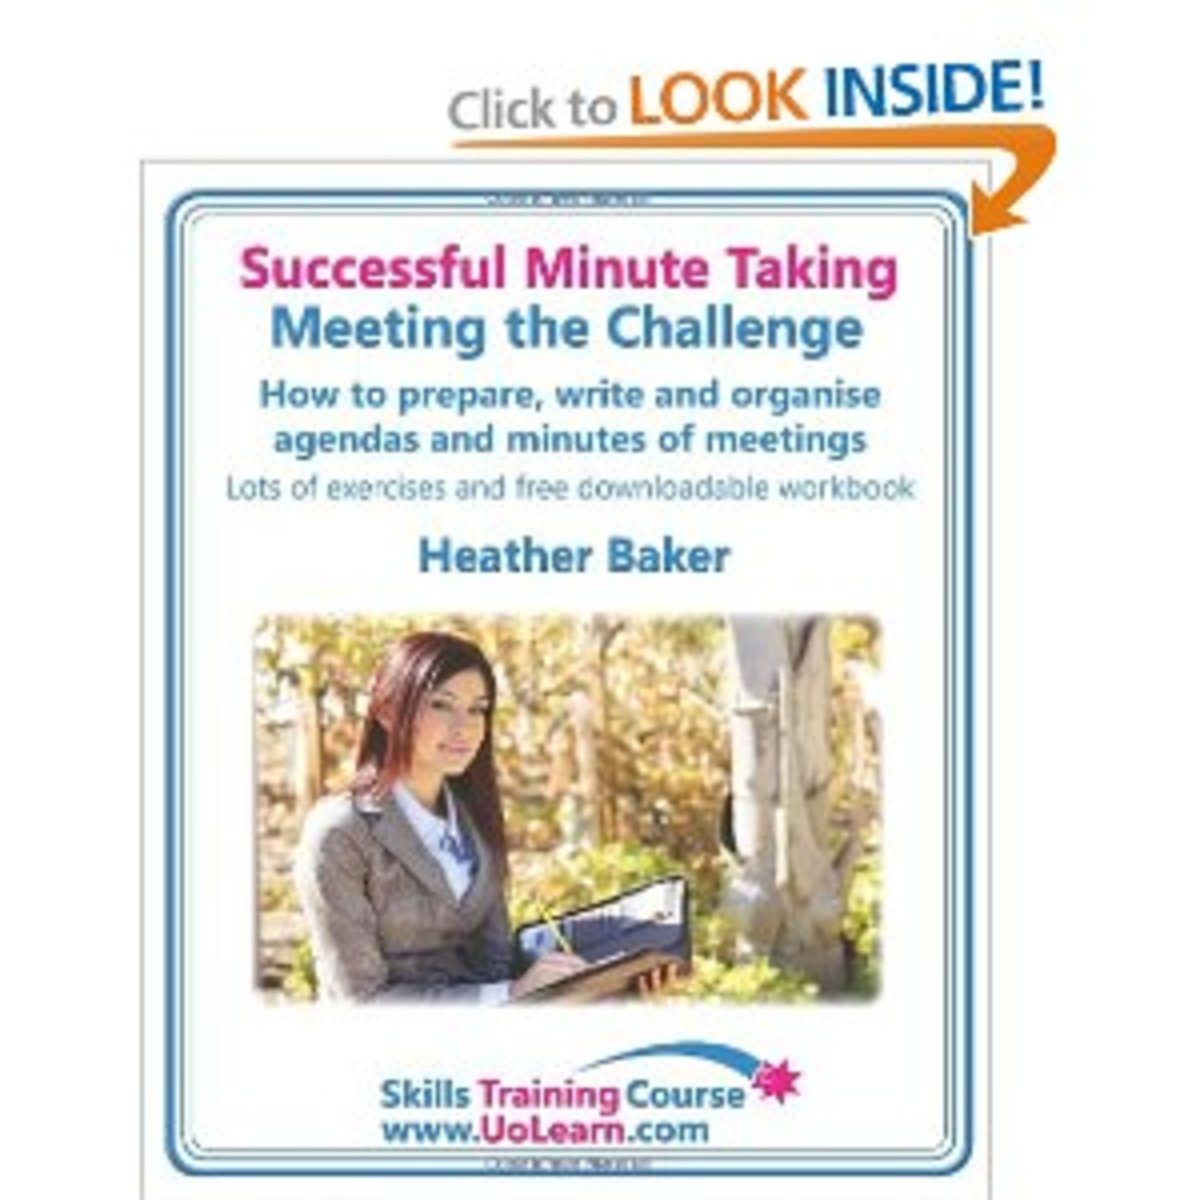 "Buy This Book - ""Prepare, Write And Organize Agendas and Minutes of Meetings"" From Amazon Link Below."